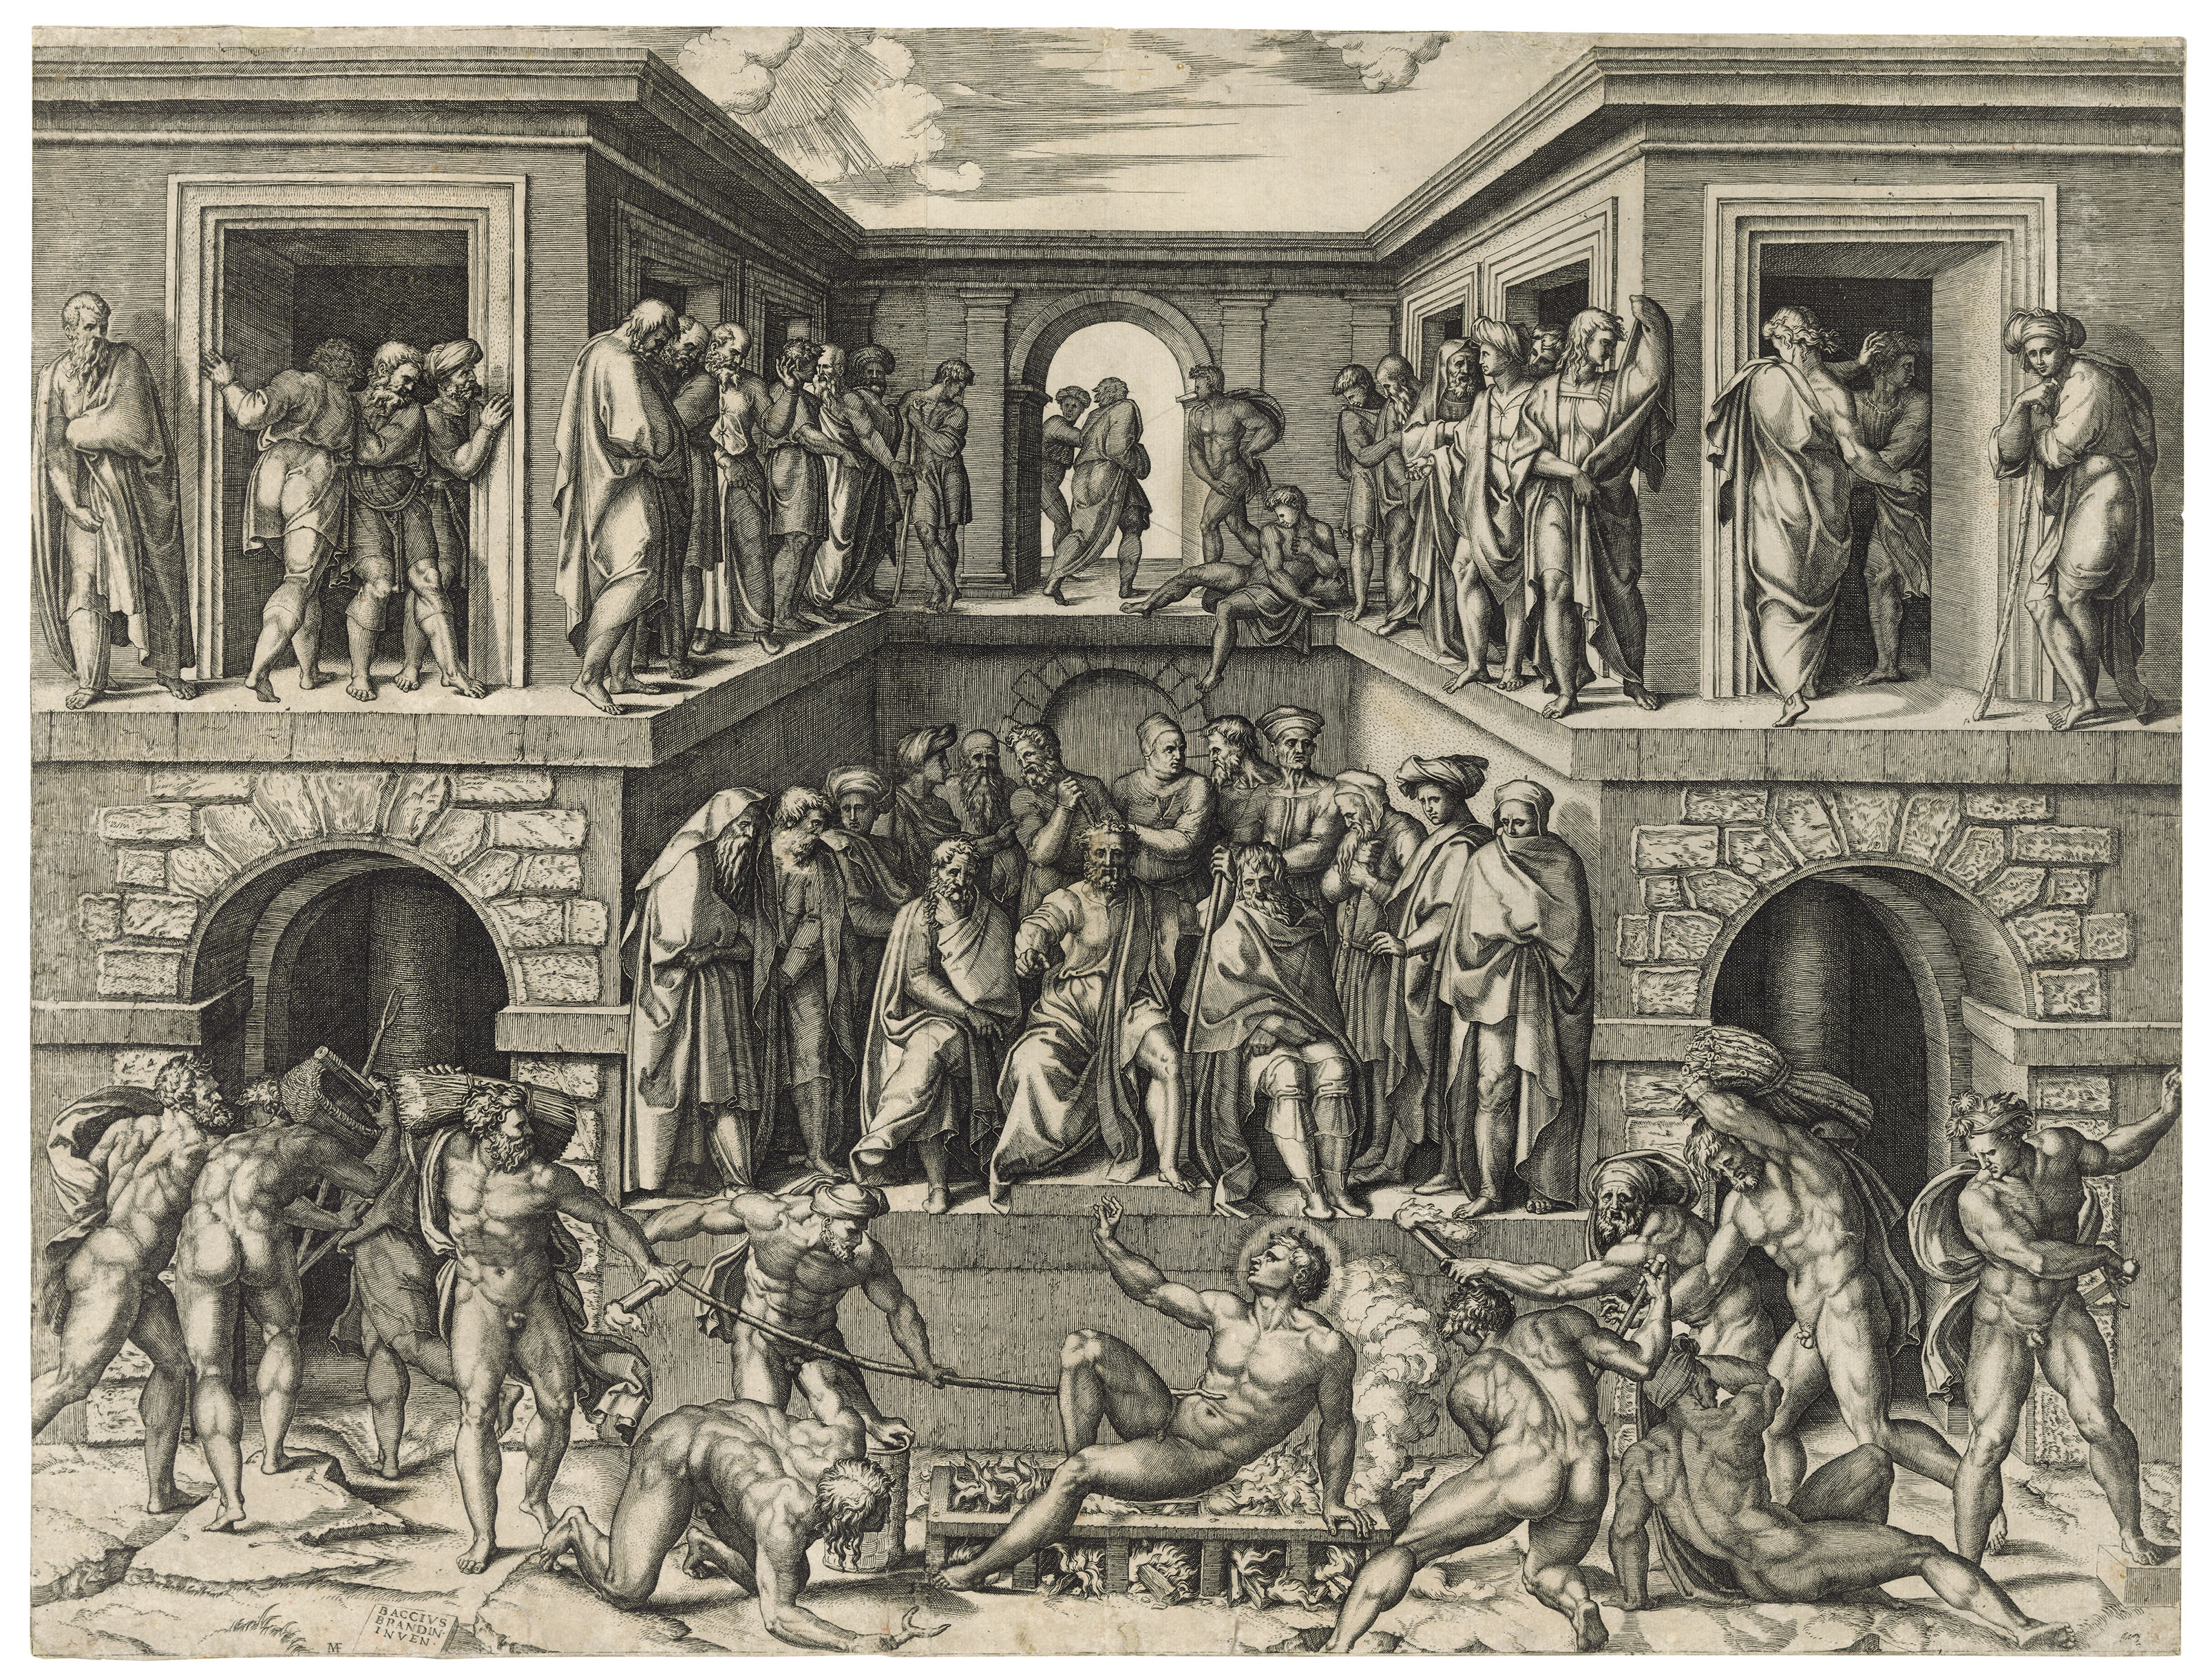 Marcantonio Raimondi (1480-1534) after Baccio Bandinelli (1488-1560),The Martyrdom of Saint Lawrence, circa 1525. Engraving on laid paper. Sheet 438 x 579 mm. Sold for £20,000 on 10 December 2019 at Christie's in London